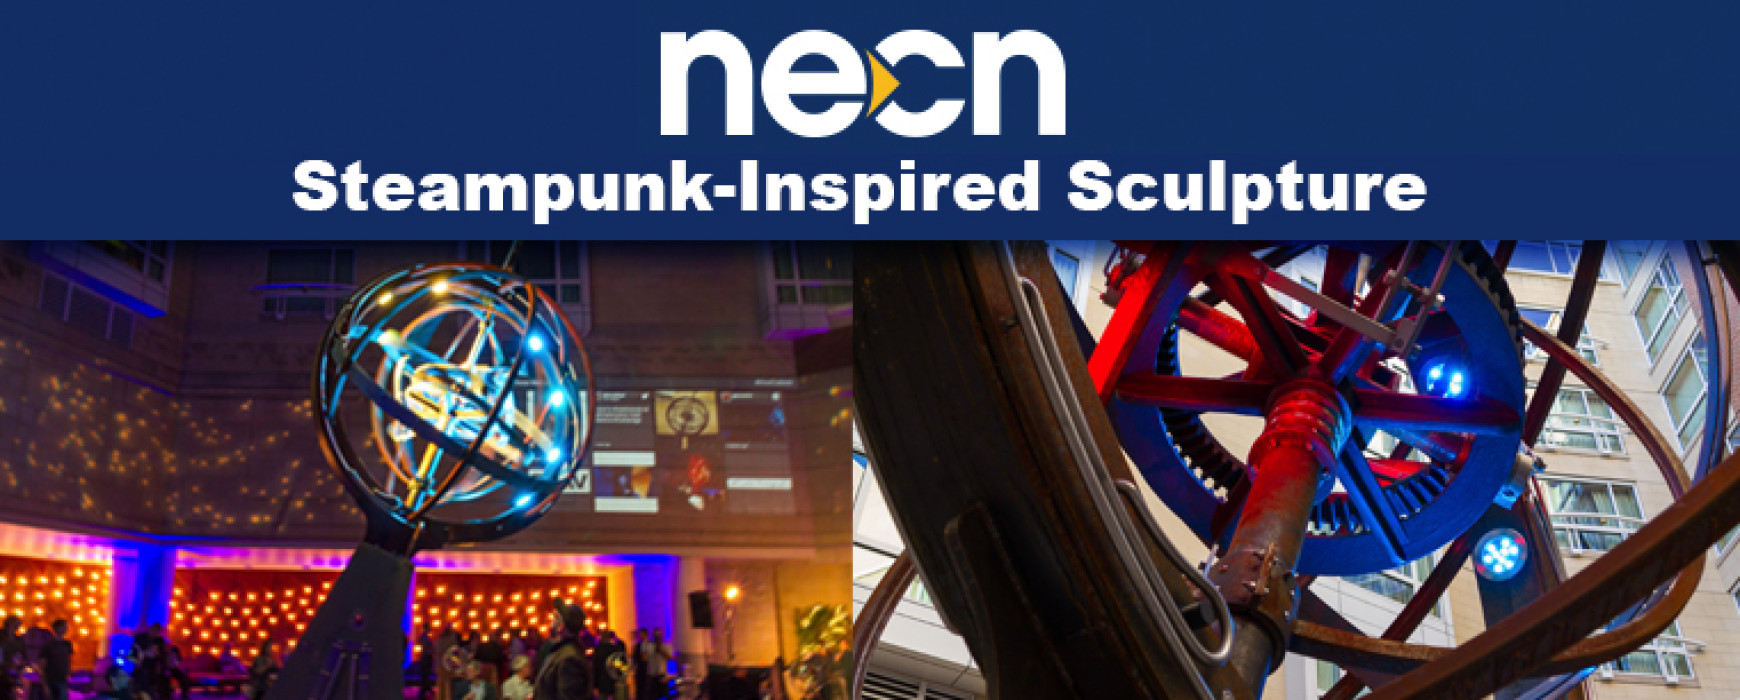 NECN: Steampunk-Inspired Sculpture